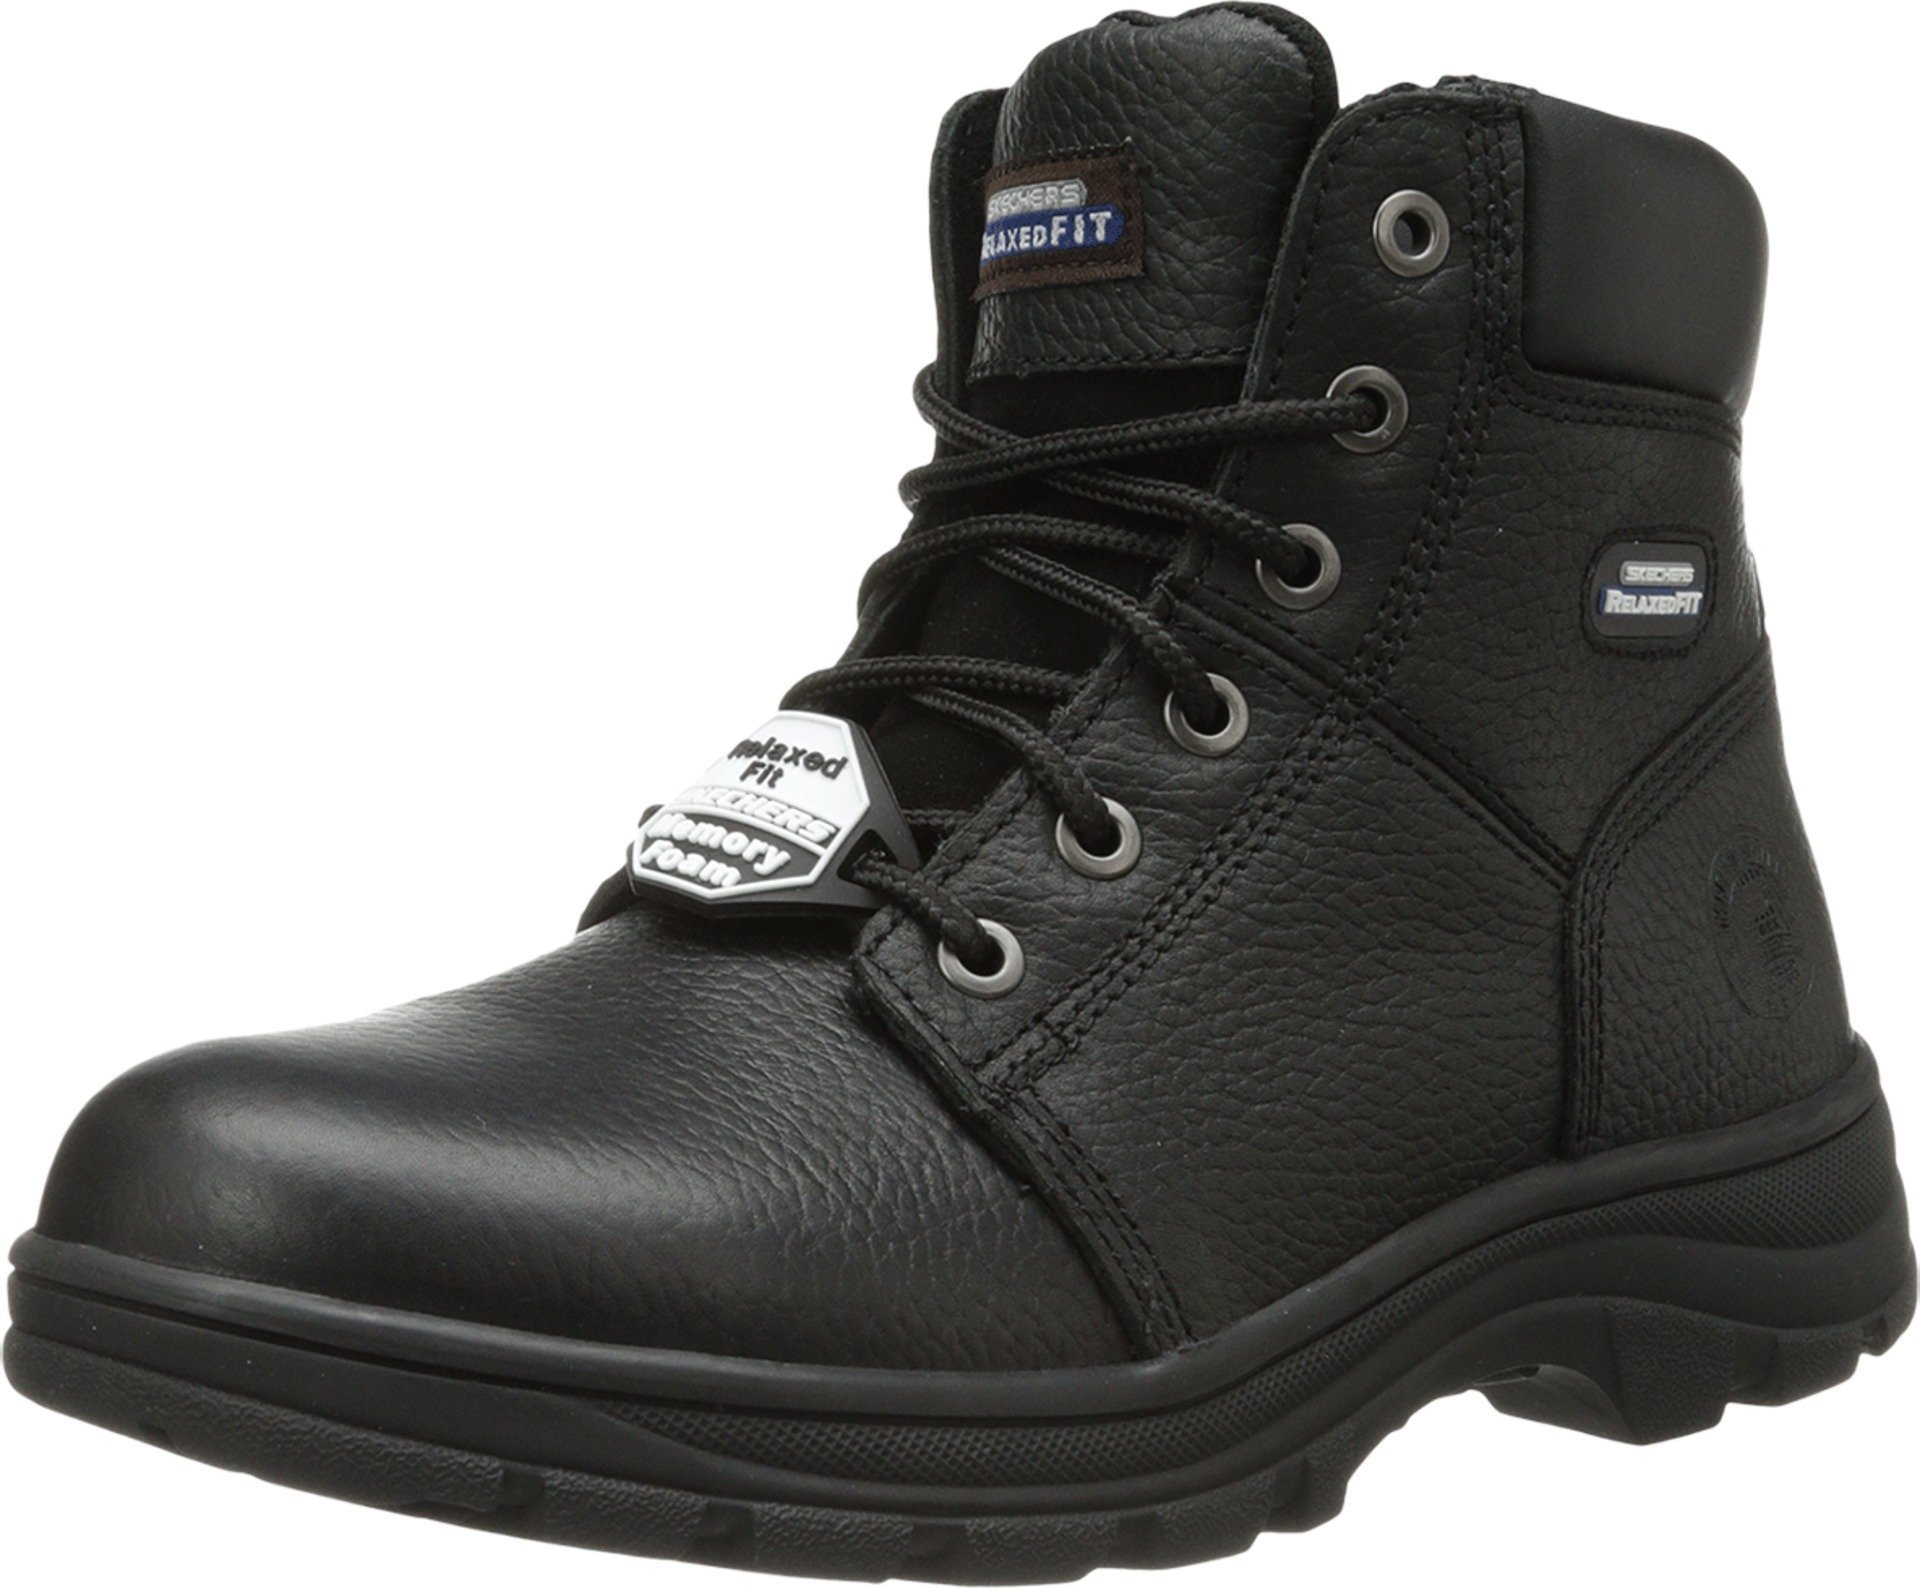 Skechers for Work Men's Workshire Condor Work Boot,Black,10 M US